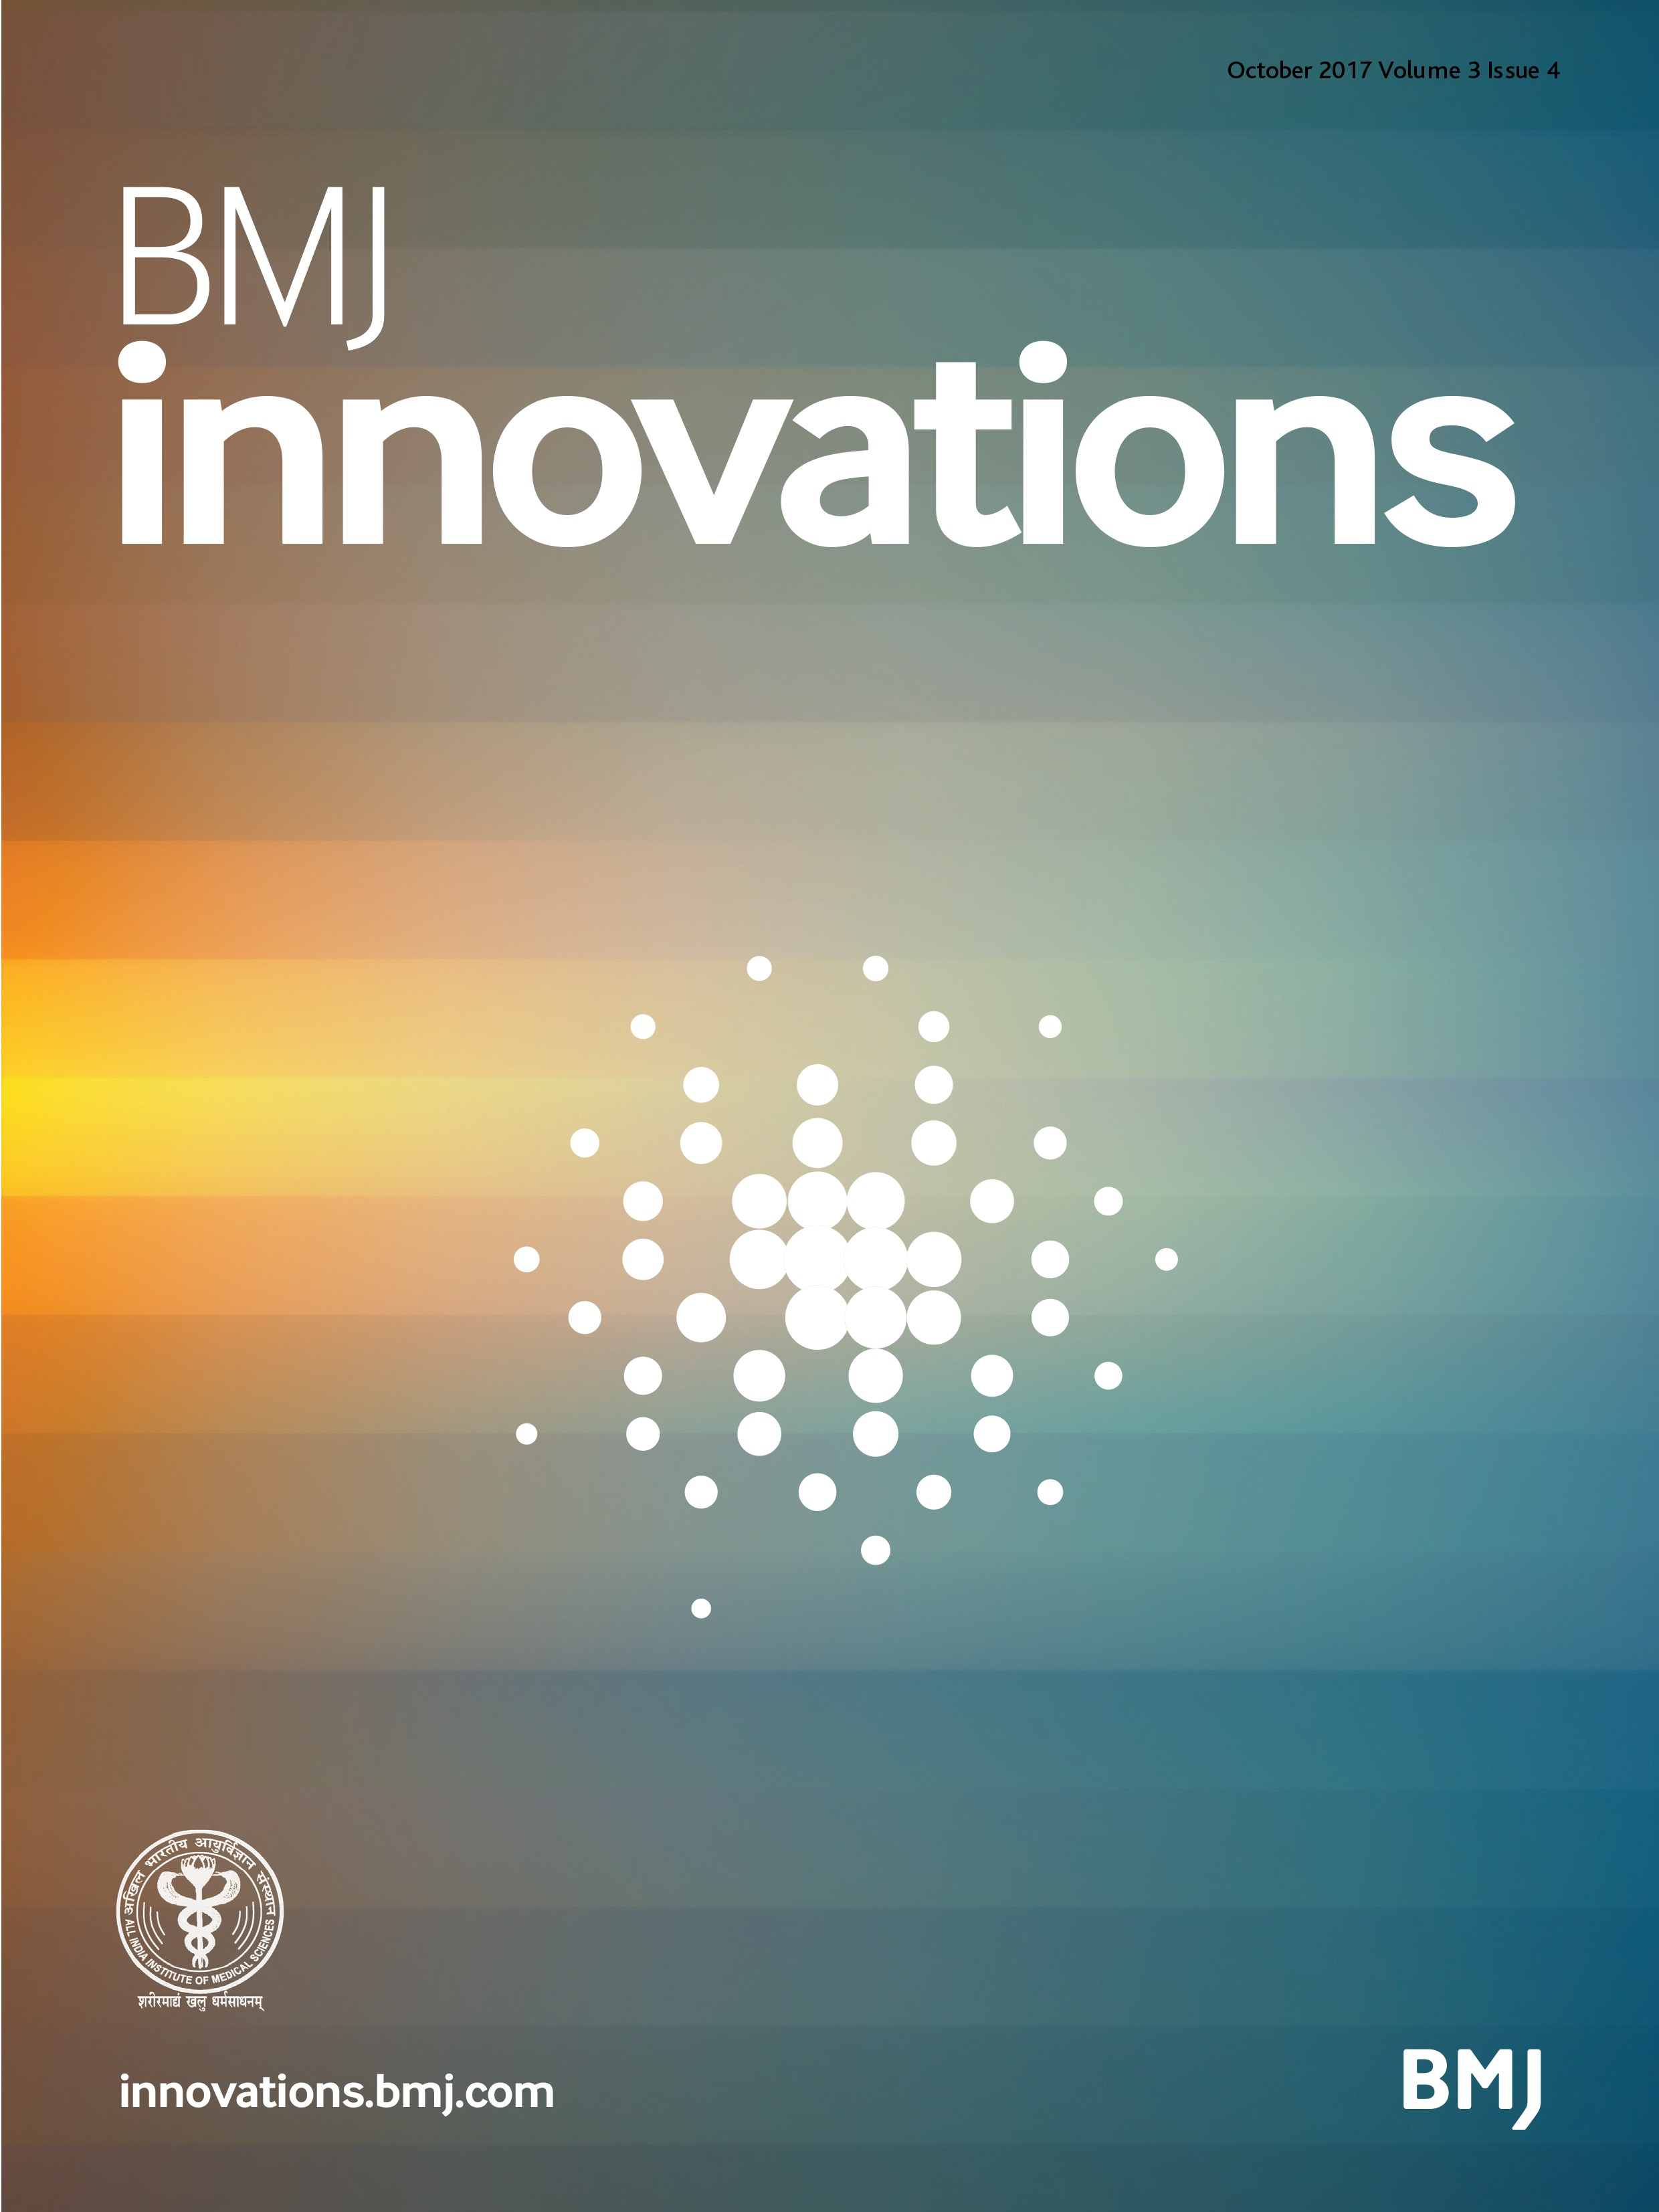 reverse frugal innovation Practical tips: gear the company towards frugal engineering and reverse innovation tips for corporate organization: concentrate personnel, power and money where there is growth: in china and asia relocate a decision maker to asia.